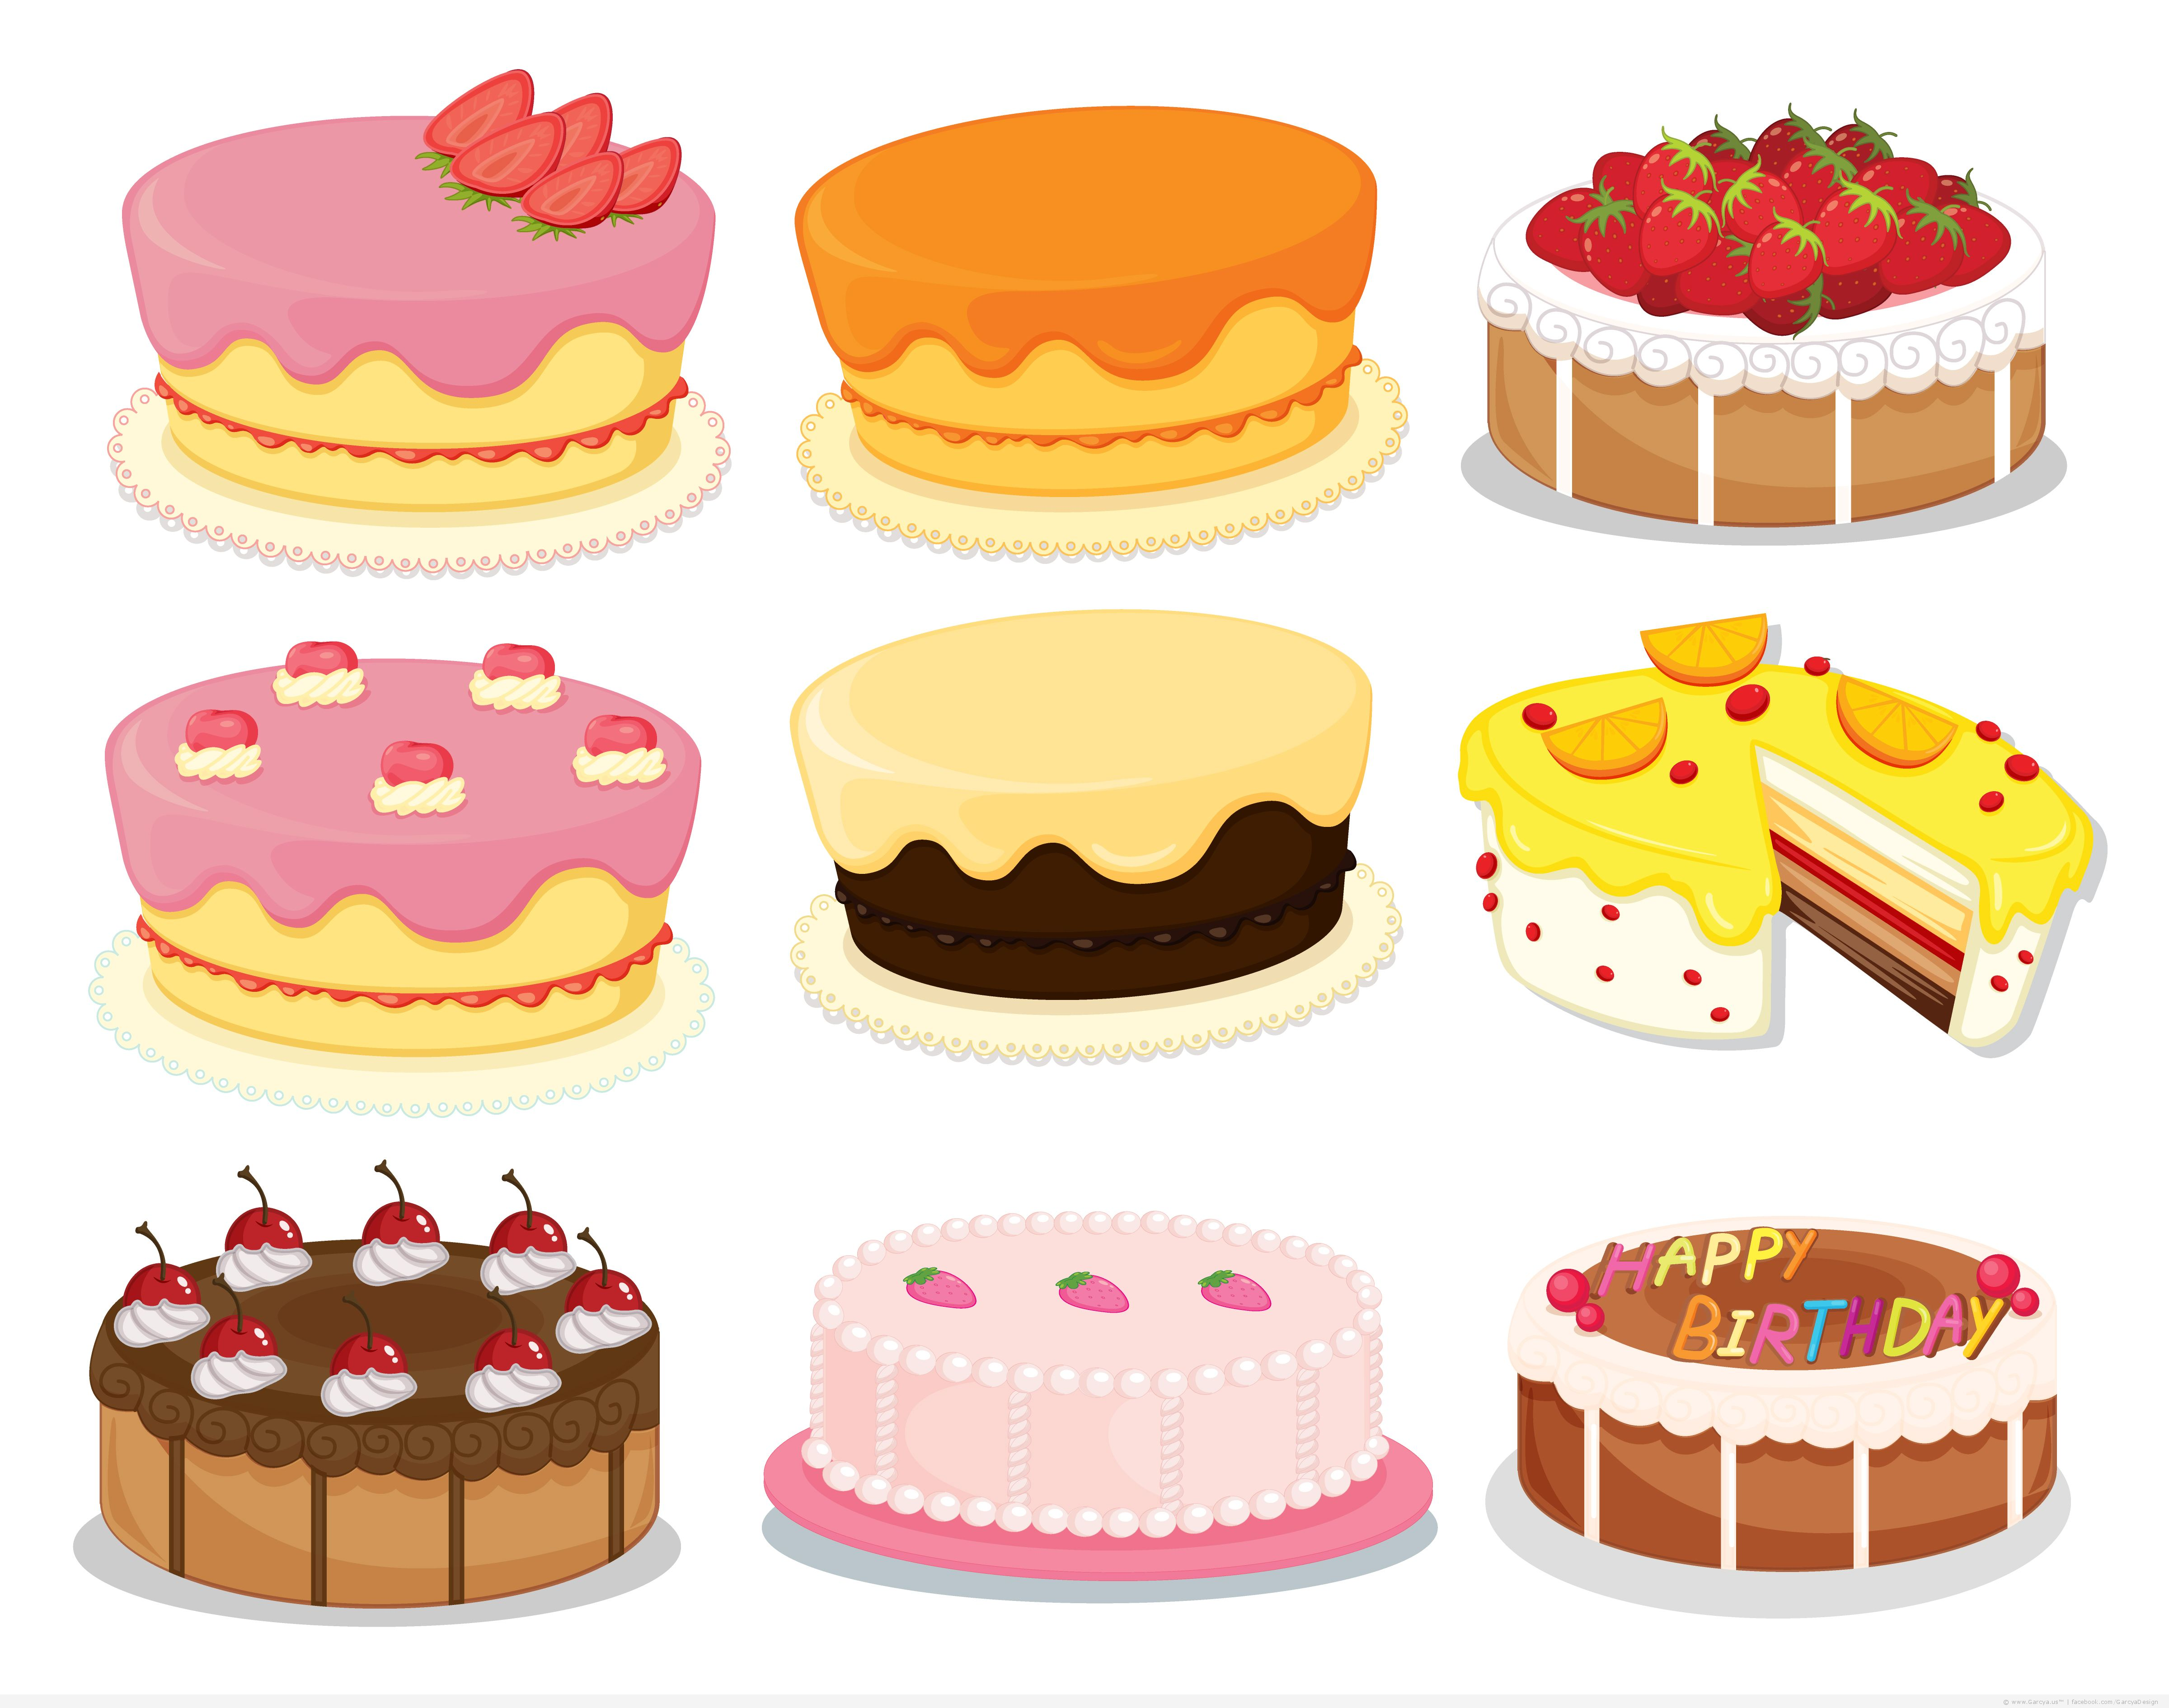 Free Download Of Cake Images : 19 Cake Vector Free Images - Birthday Cake Vector Free ...